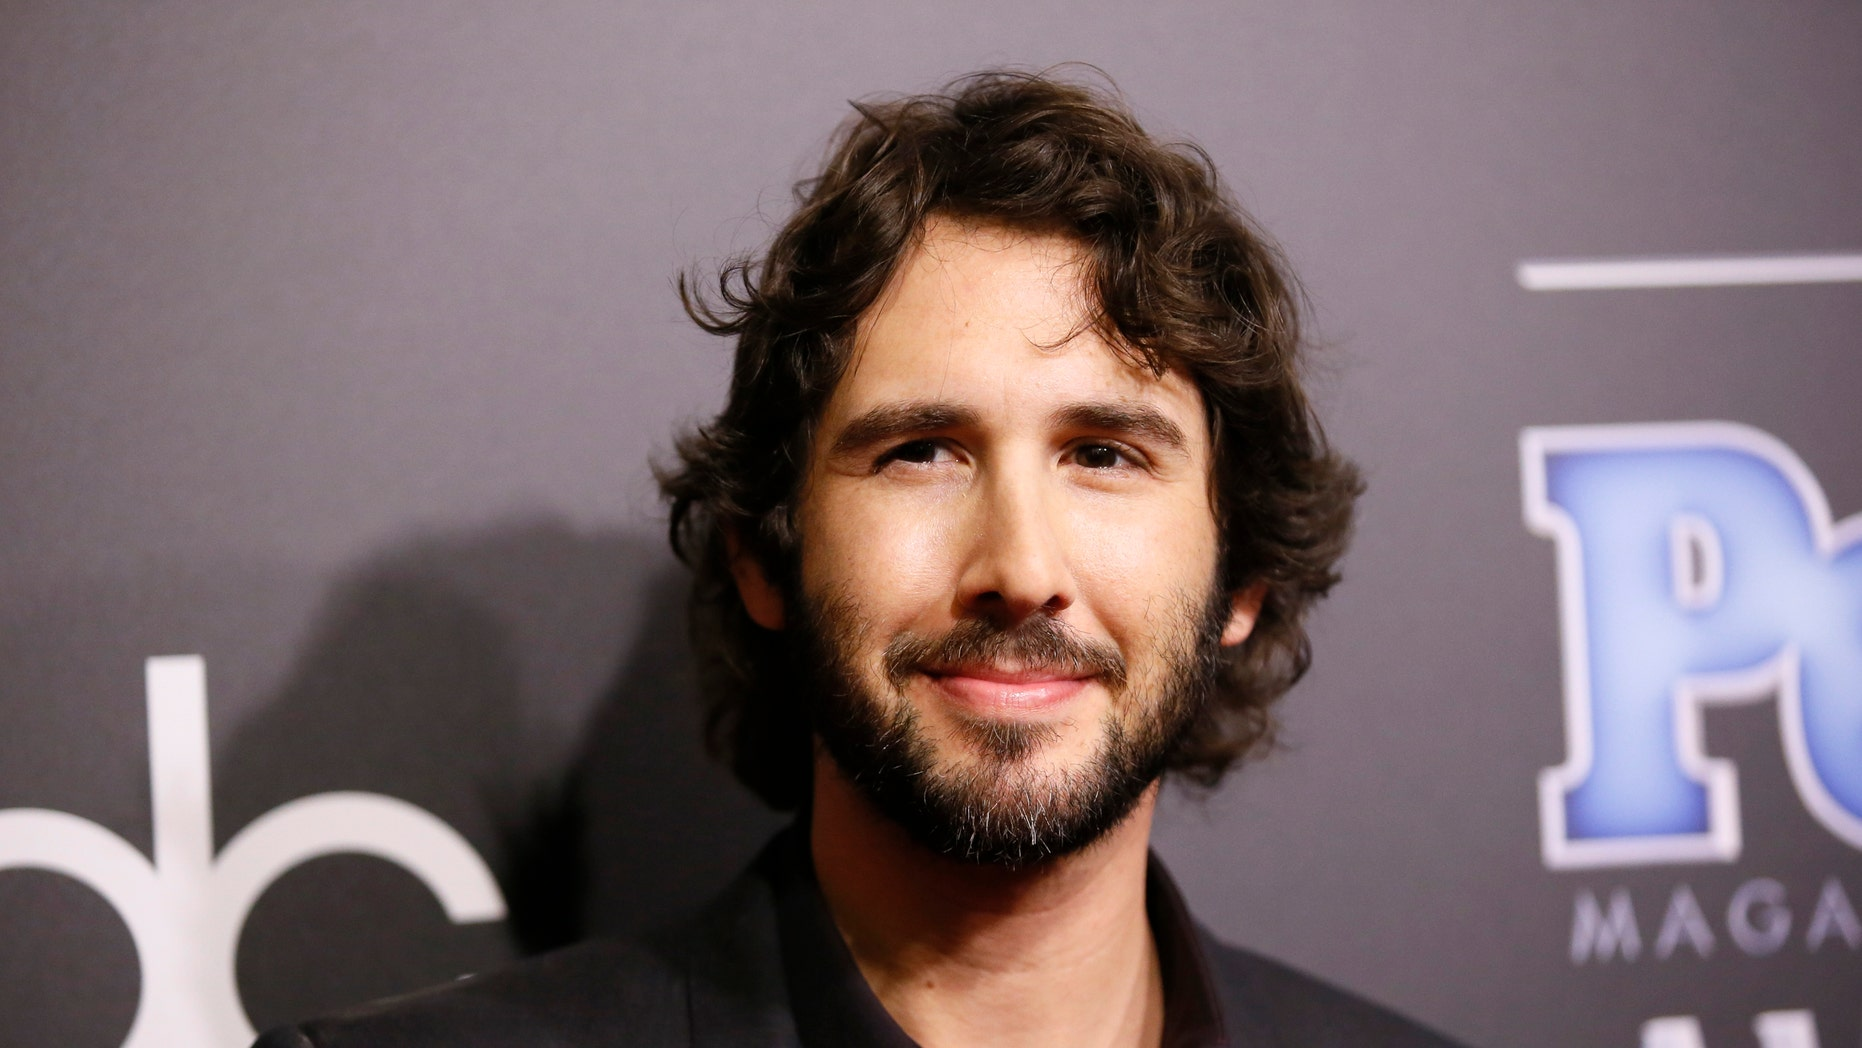 Musician Josh Groban arrives at the People Magazine Awards in Beverly Hills, California December 18, 2014.   REUTERS/Danny Moloshok (UNITED STATES  - Tags: ENTERTAINMENT)   - RTR4IMFZ